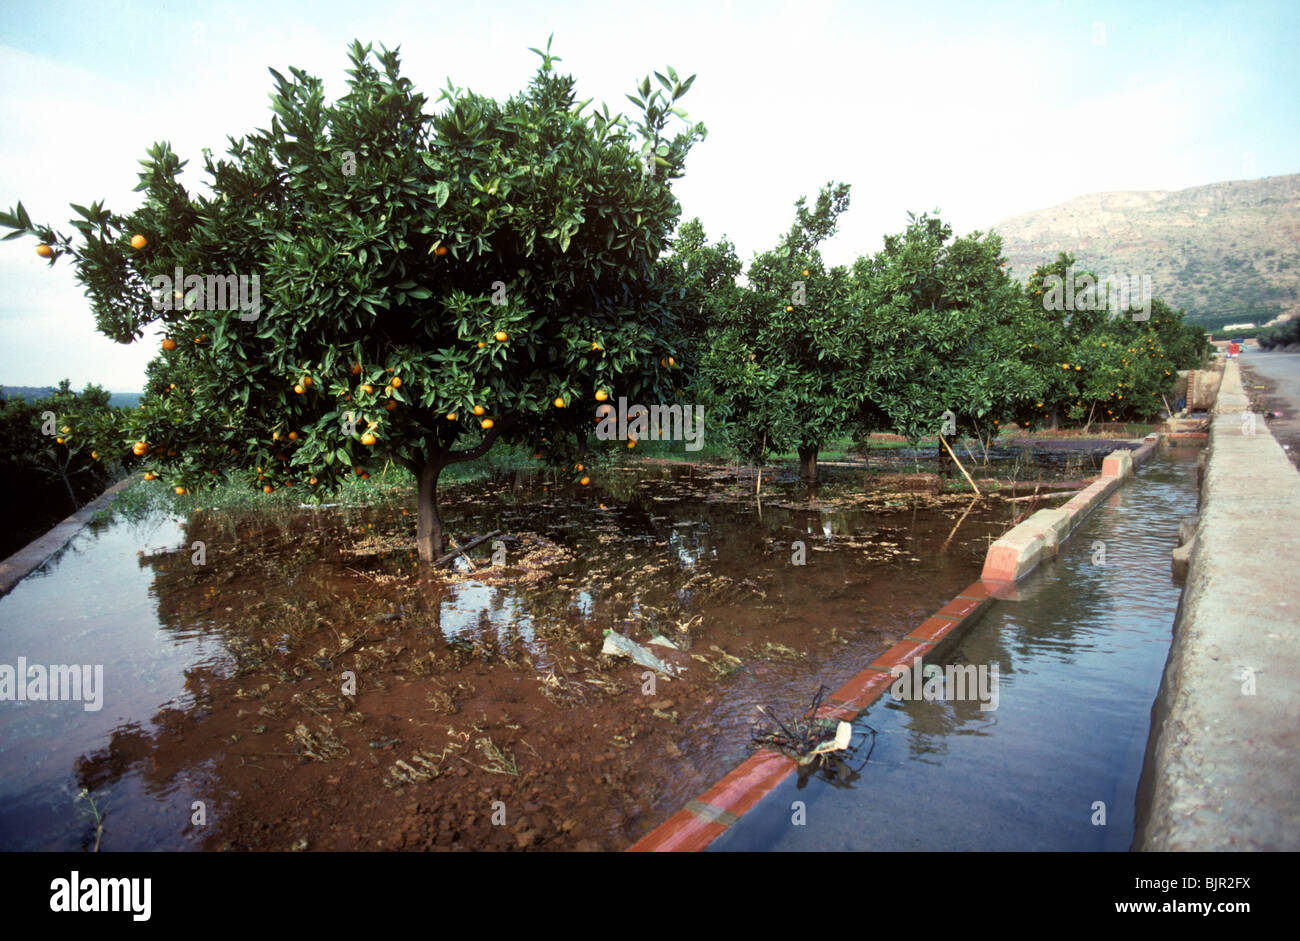 Flood irrigation of an clementine orchard from overflowing water canals, Valencia - Stock Image